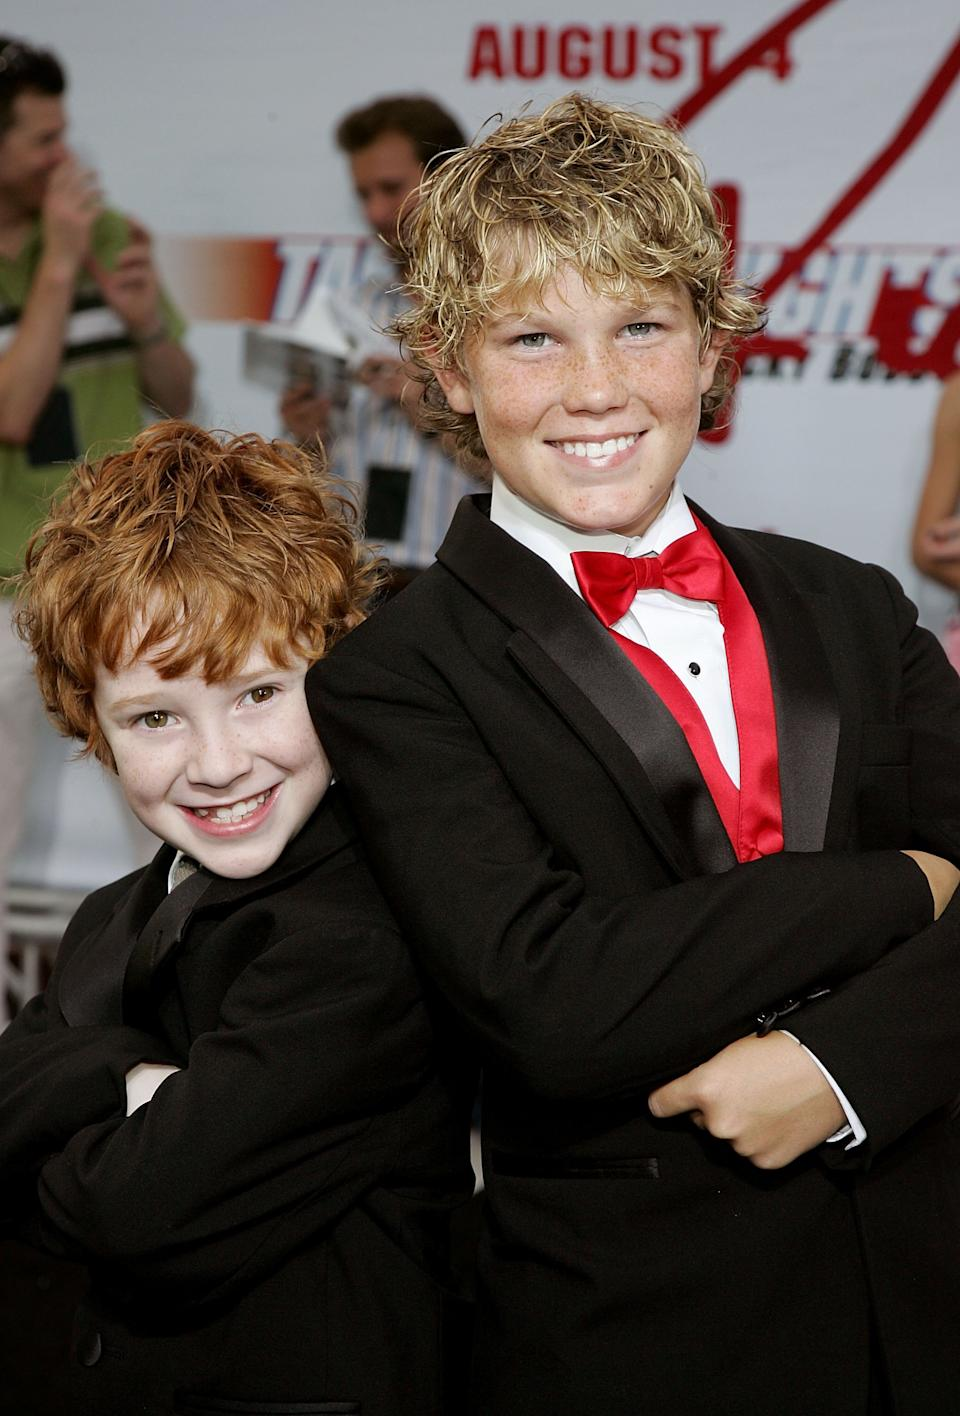 Actor Grayson Russell (L) and Houston Tumlin arrive at the premiere of